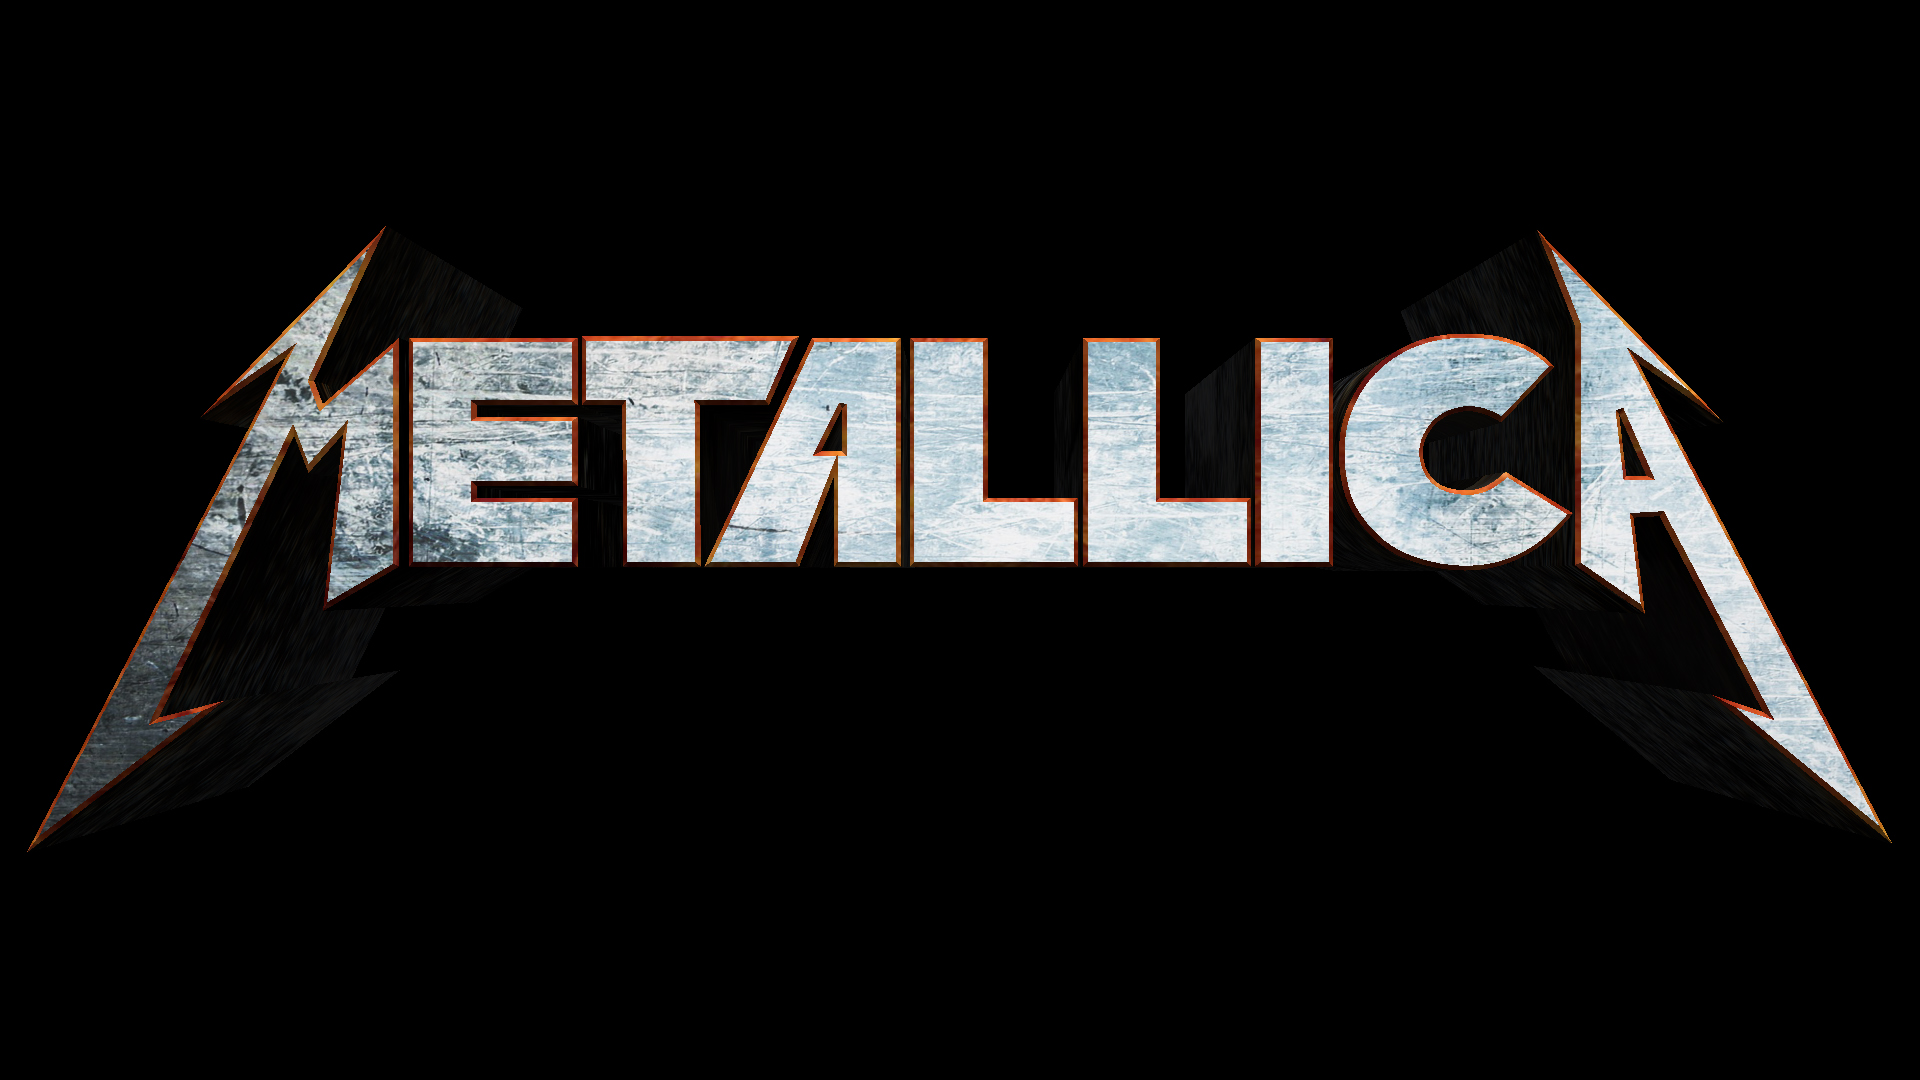 Girl Wallpaper Full Hd Metallica Wallpapers Logos Amp Brands